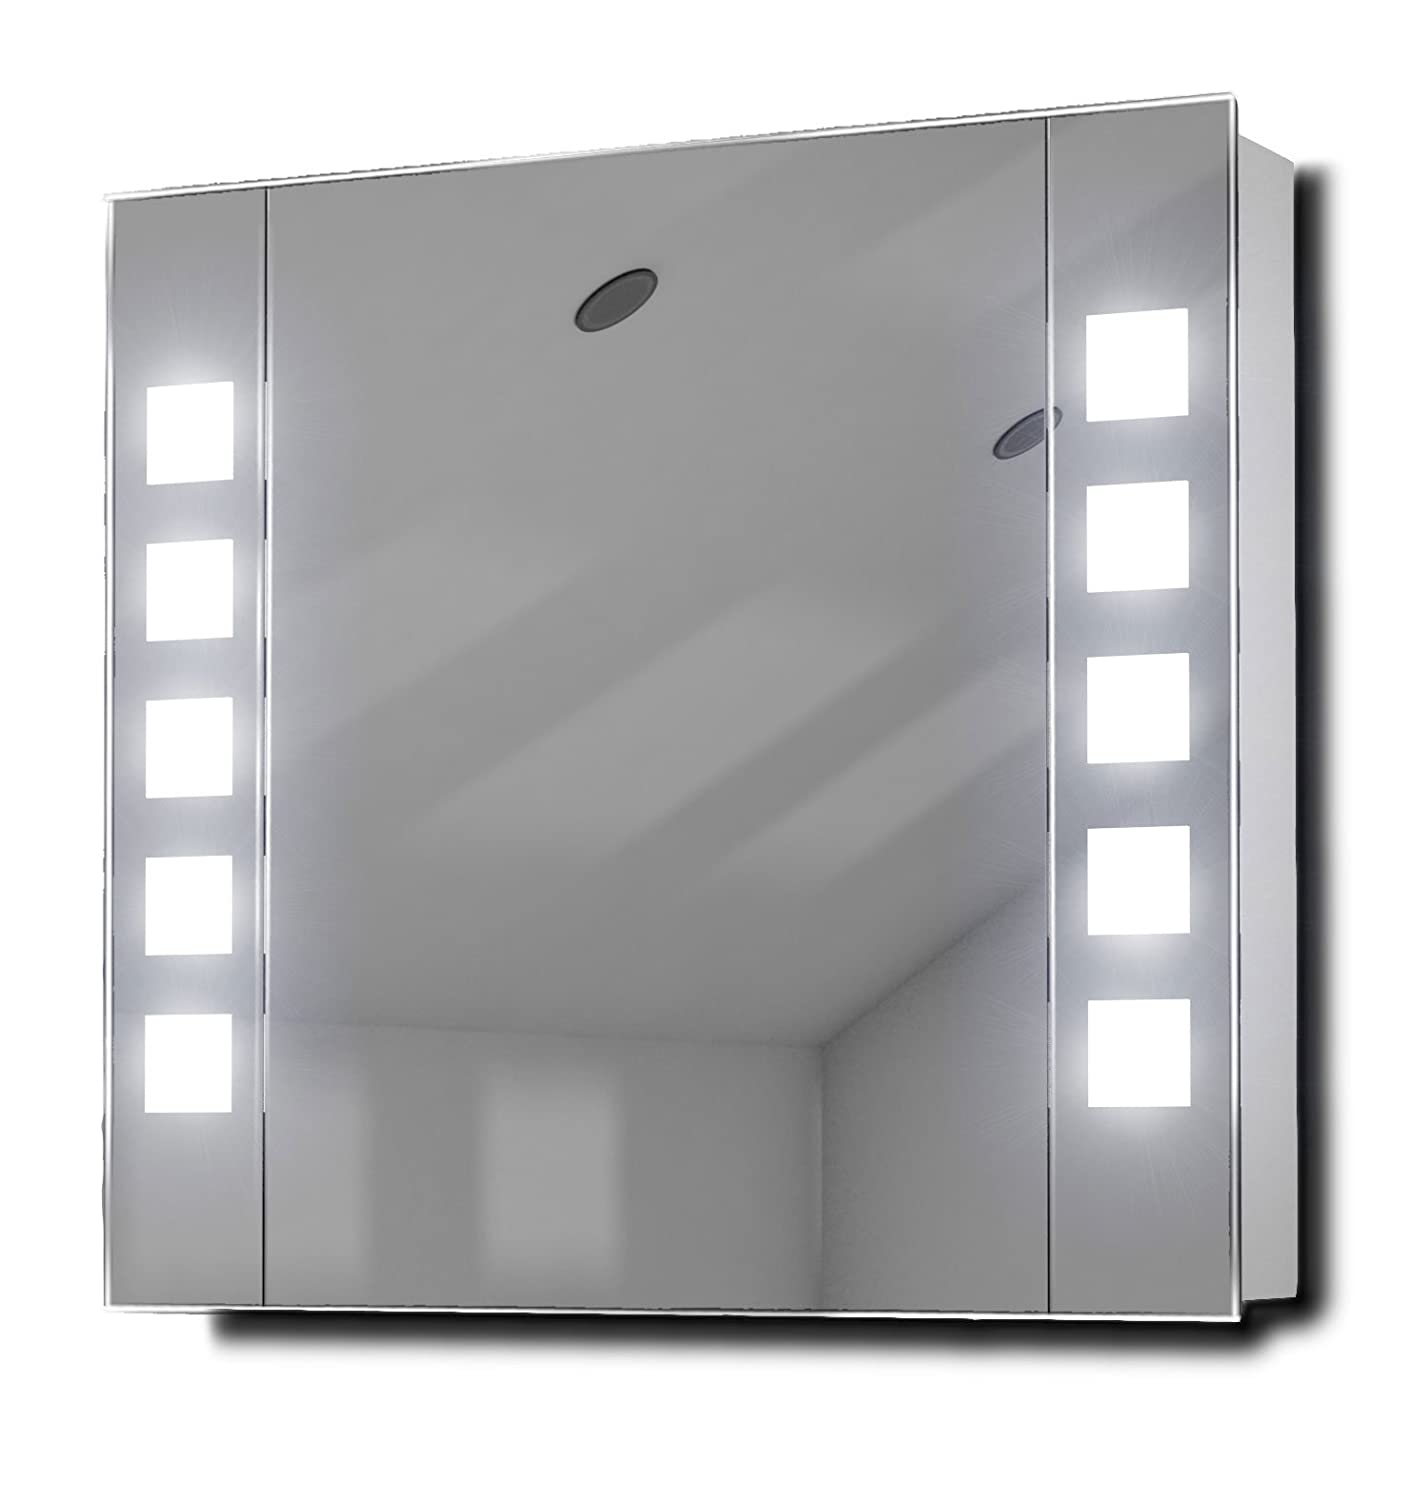 Superieur Amazon.com: Noble LED Illuminated Bathroom Mirror Cabinet With Sensor U0026  Shaver K16: Home U0026 Kitchen